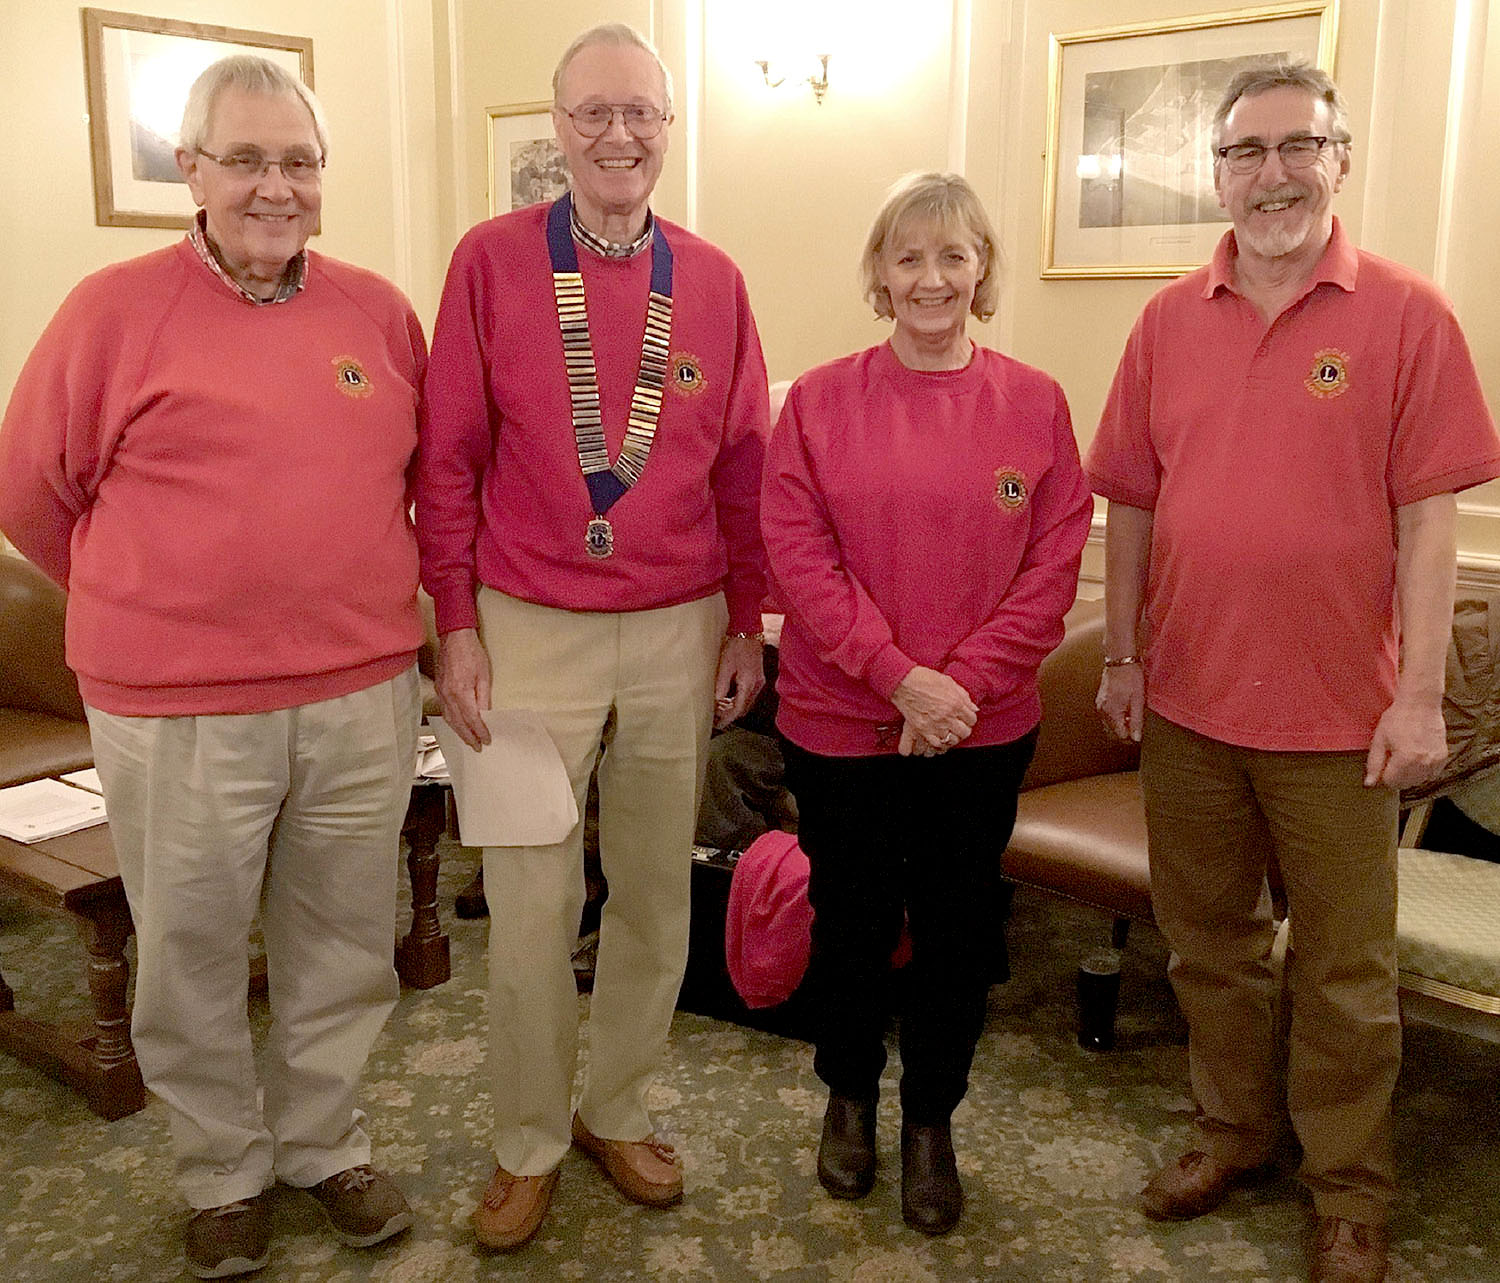 From left to right: New Member seconder - Lion Graham Gooda, Lion President Chris Lambert, New Member - Lion Sharon Page and Membership Chair and New Member Sponsor Lion - Keith Moore.